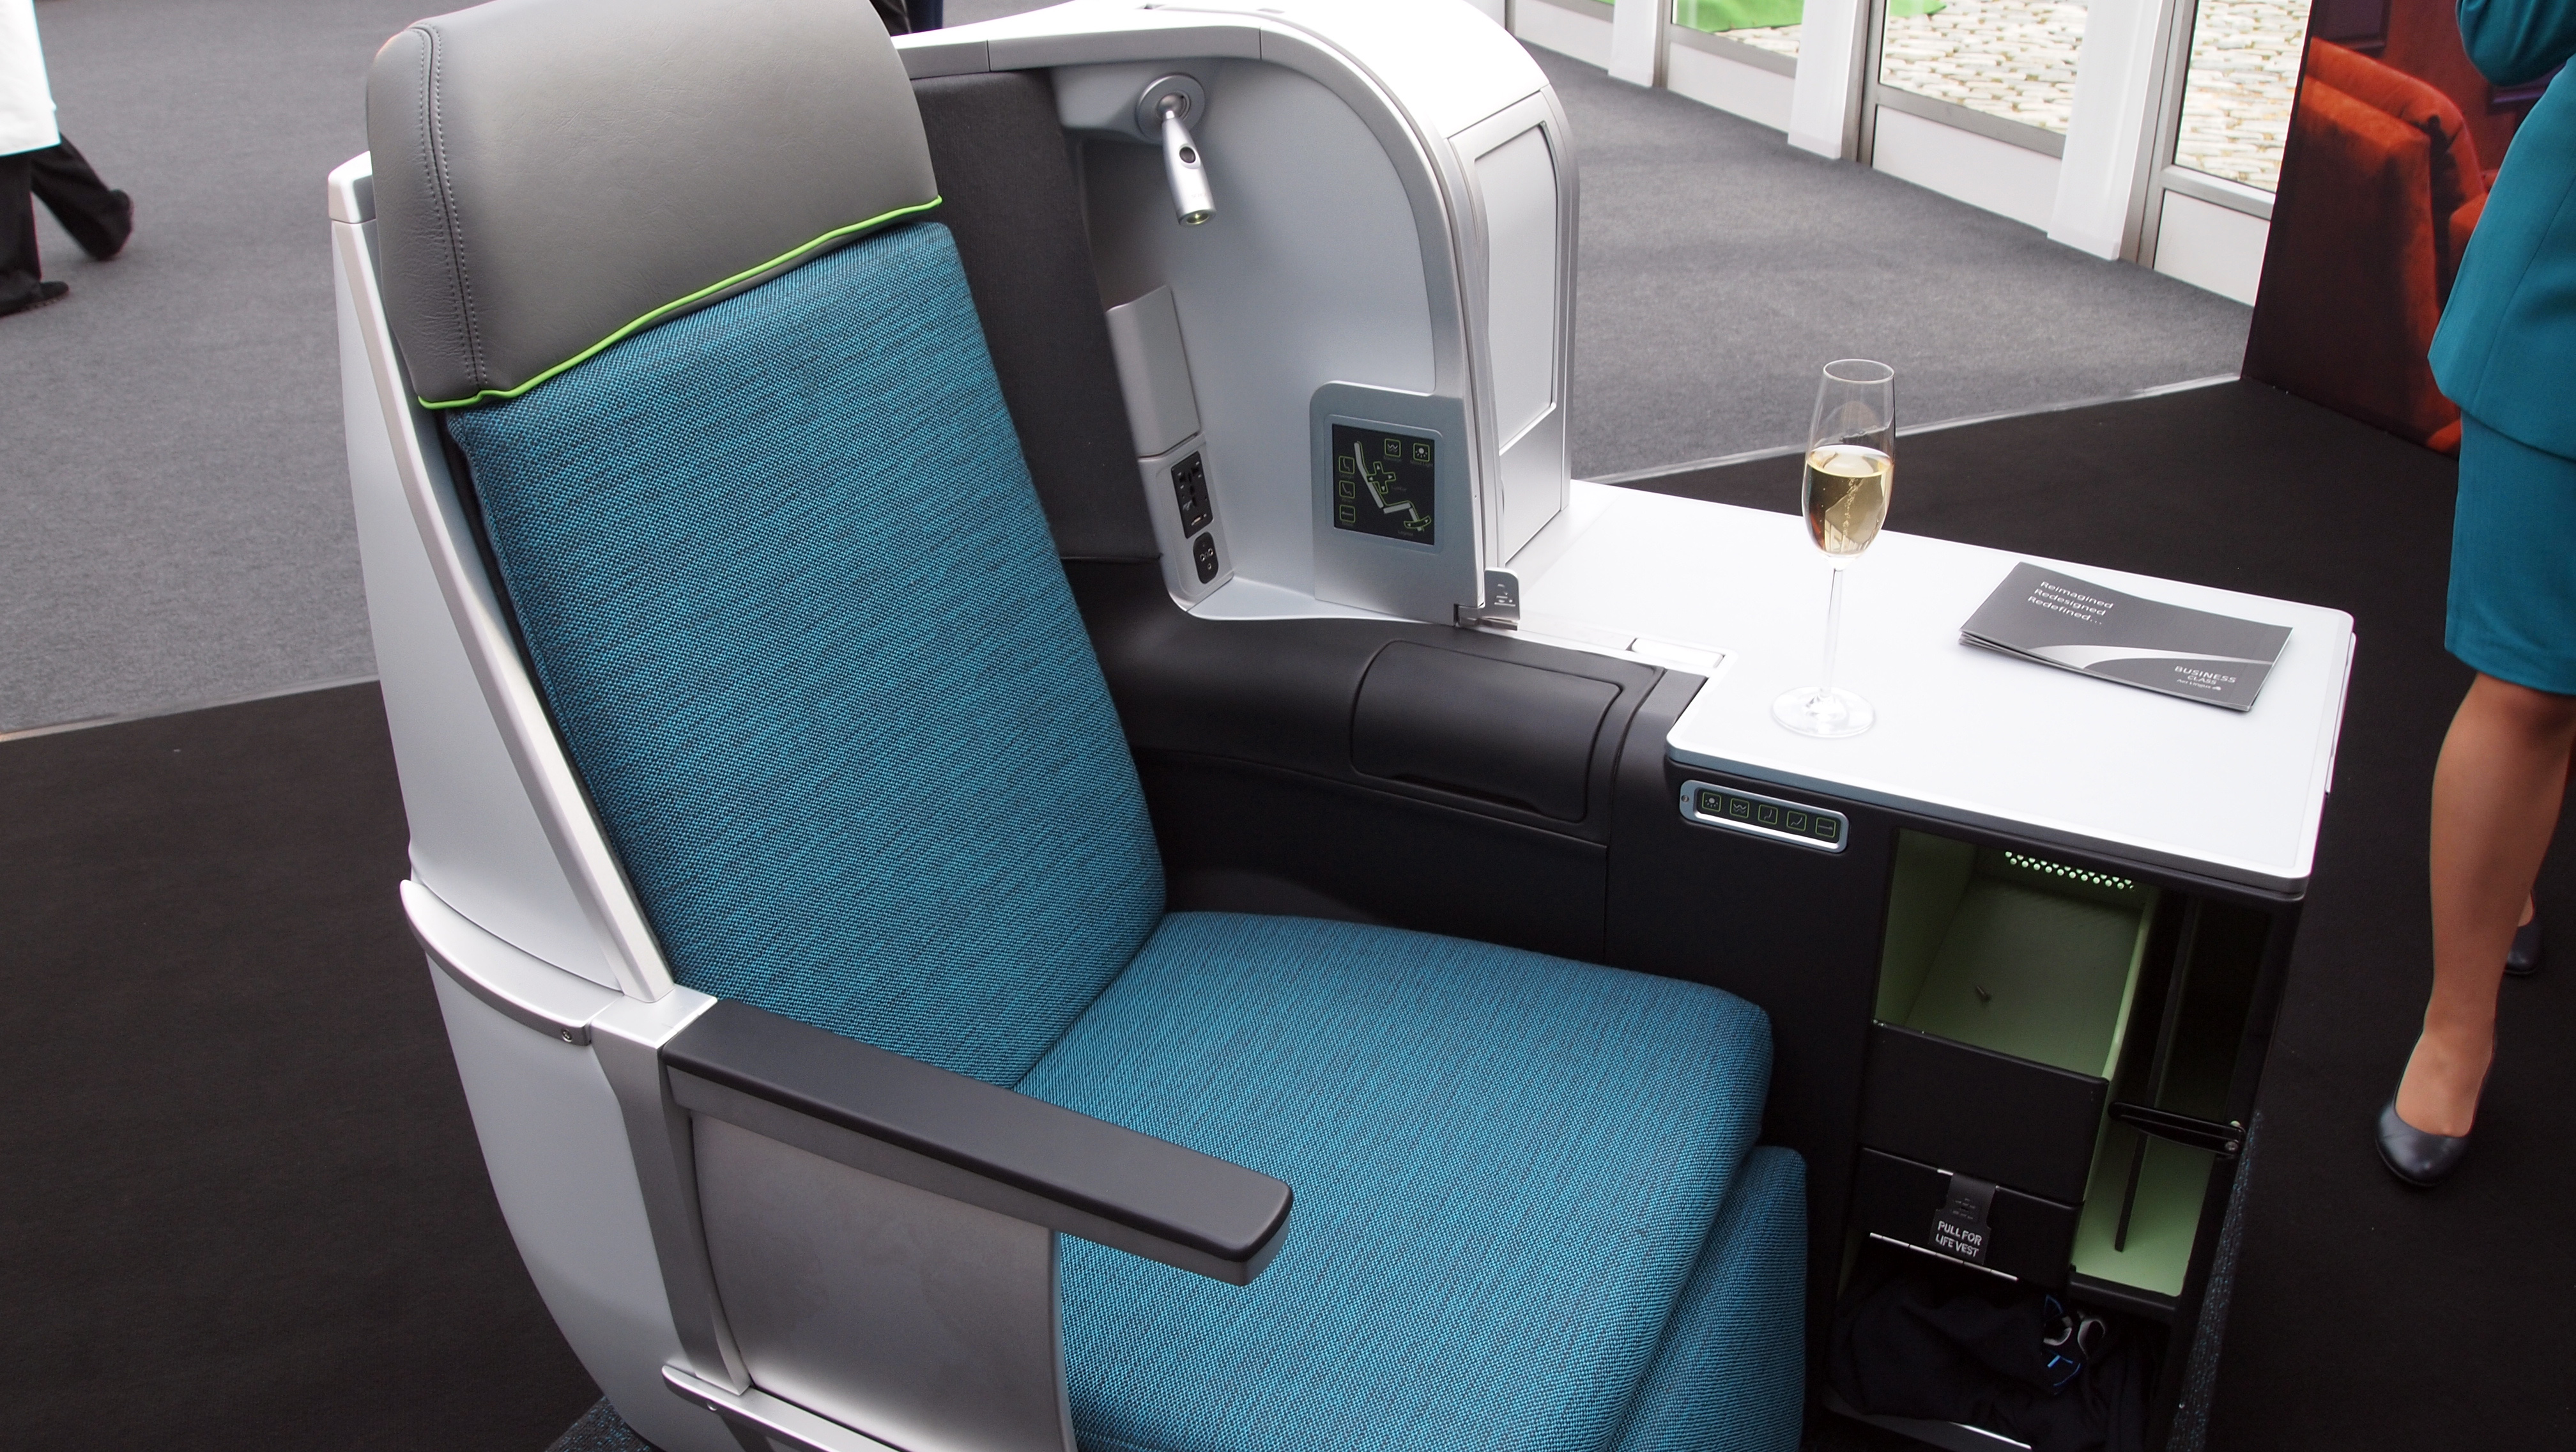 Aer Lingus New Business Class Seat Signals Change At The